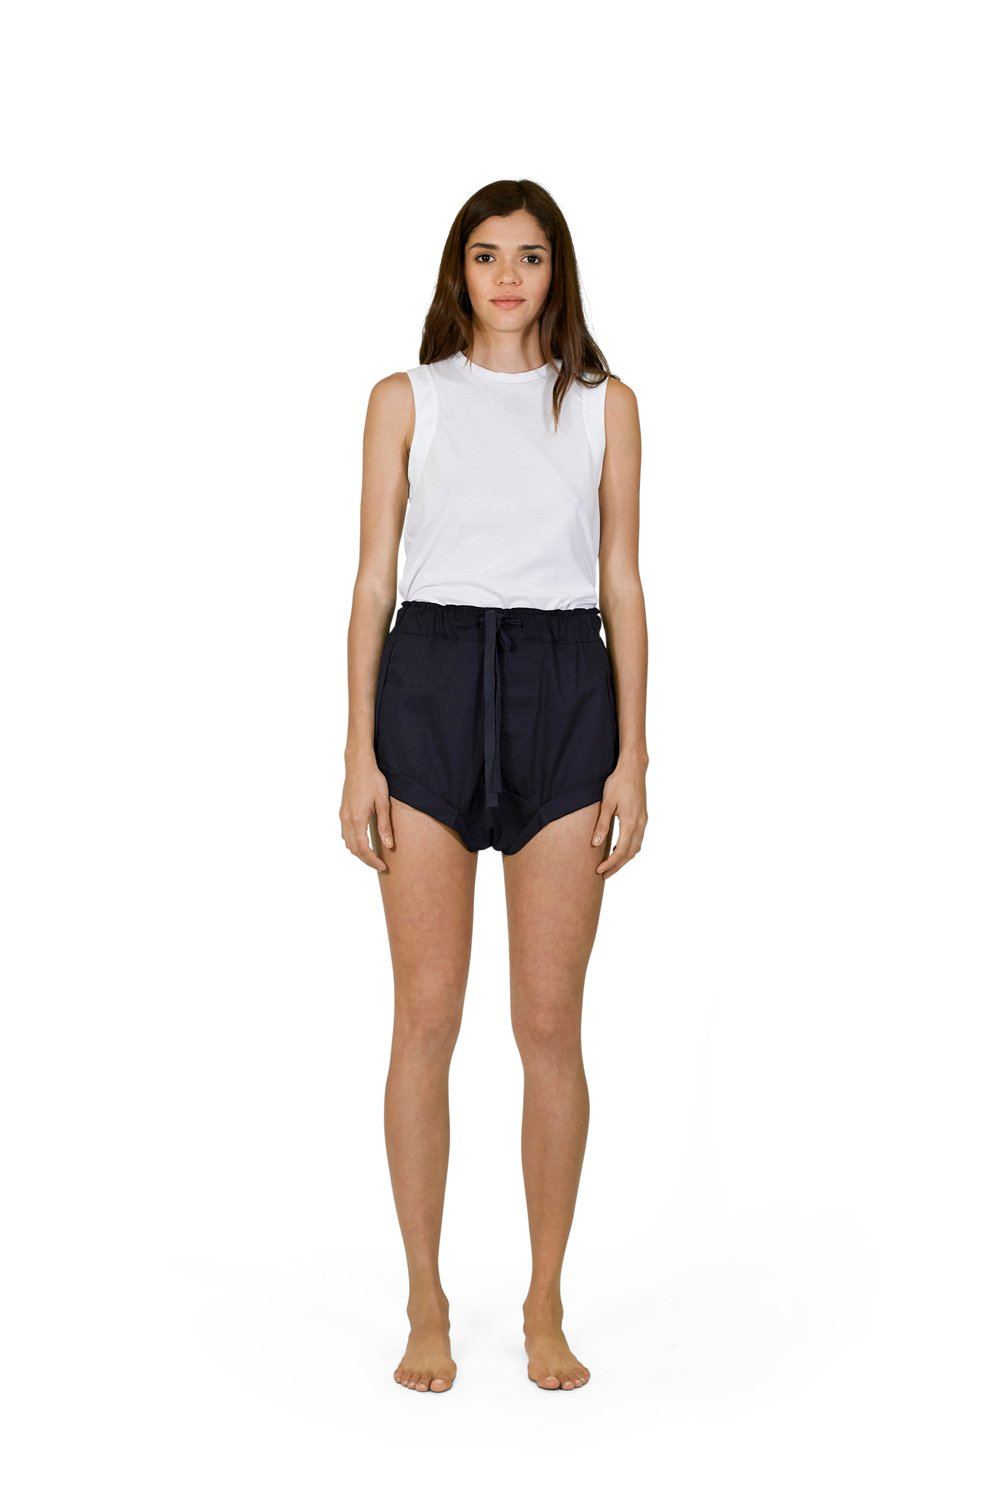 Buy Sanbasics Drop Short | Buy Sanbasics Fashion Online